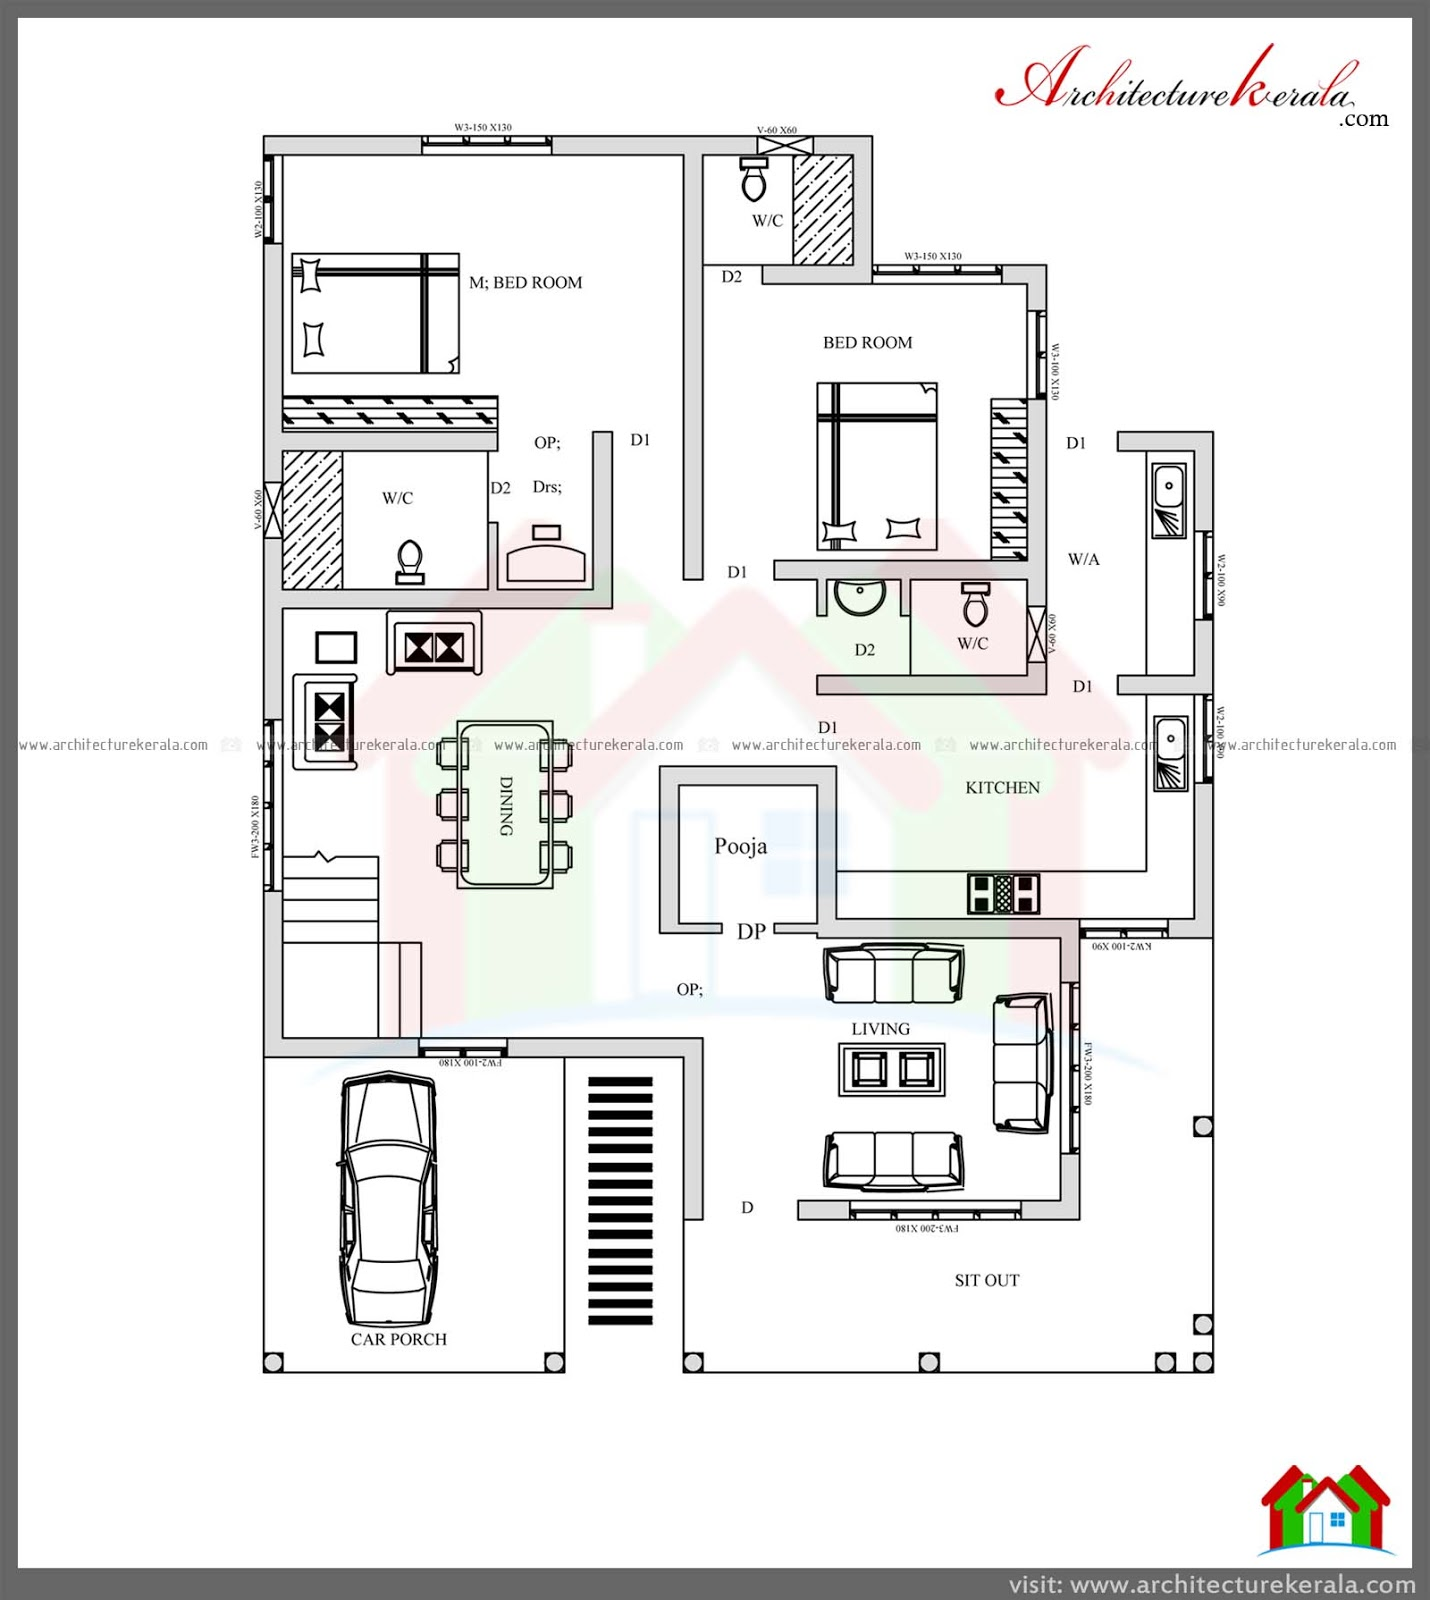 Stunning 4 bedroom kerala home design with pooja room free 3 bedroom kerala house plans